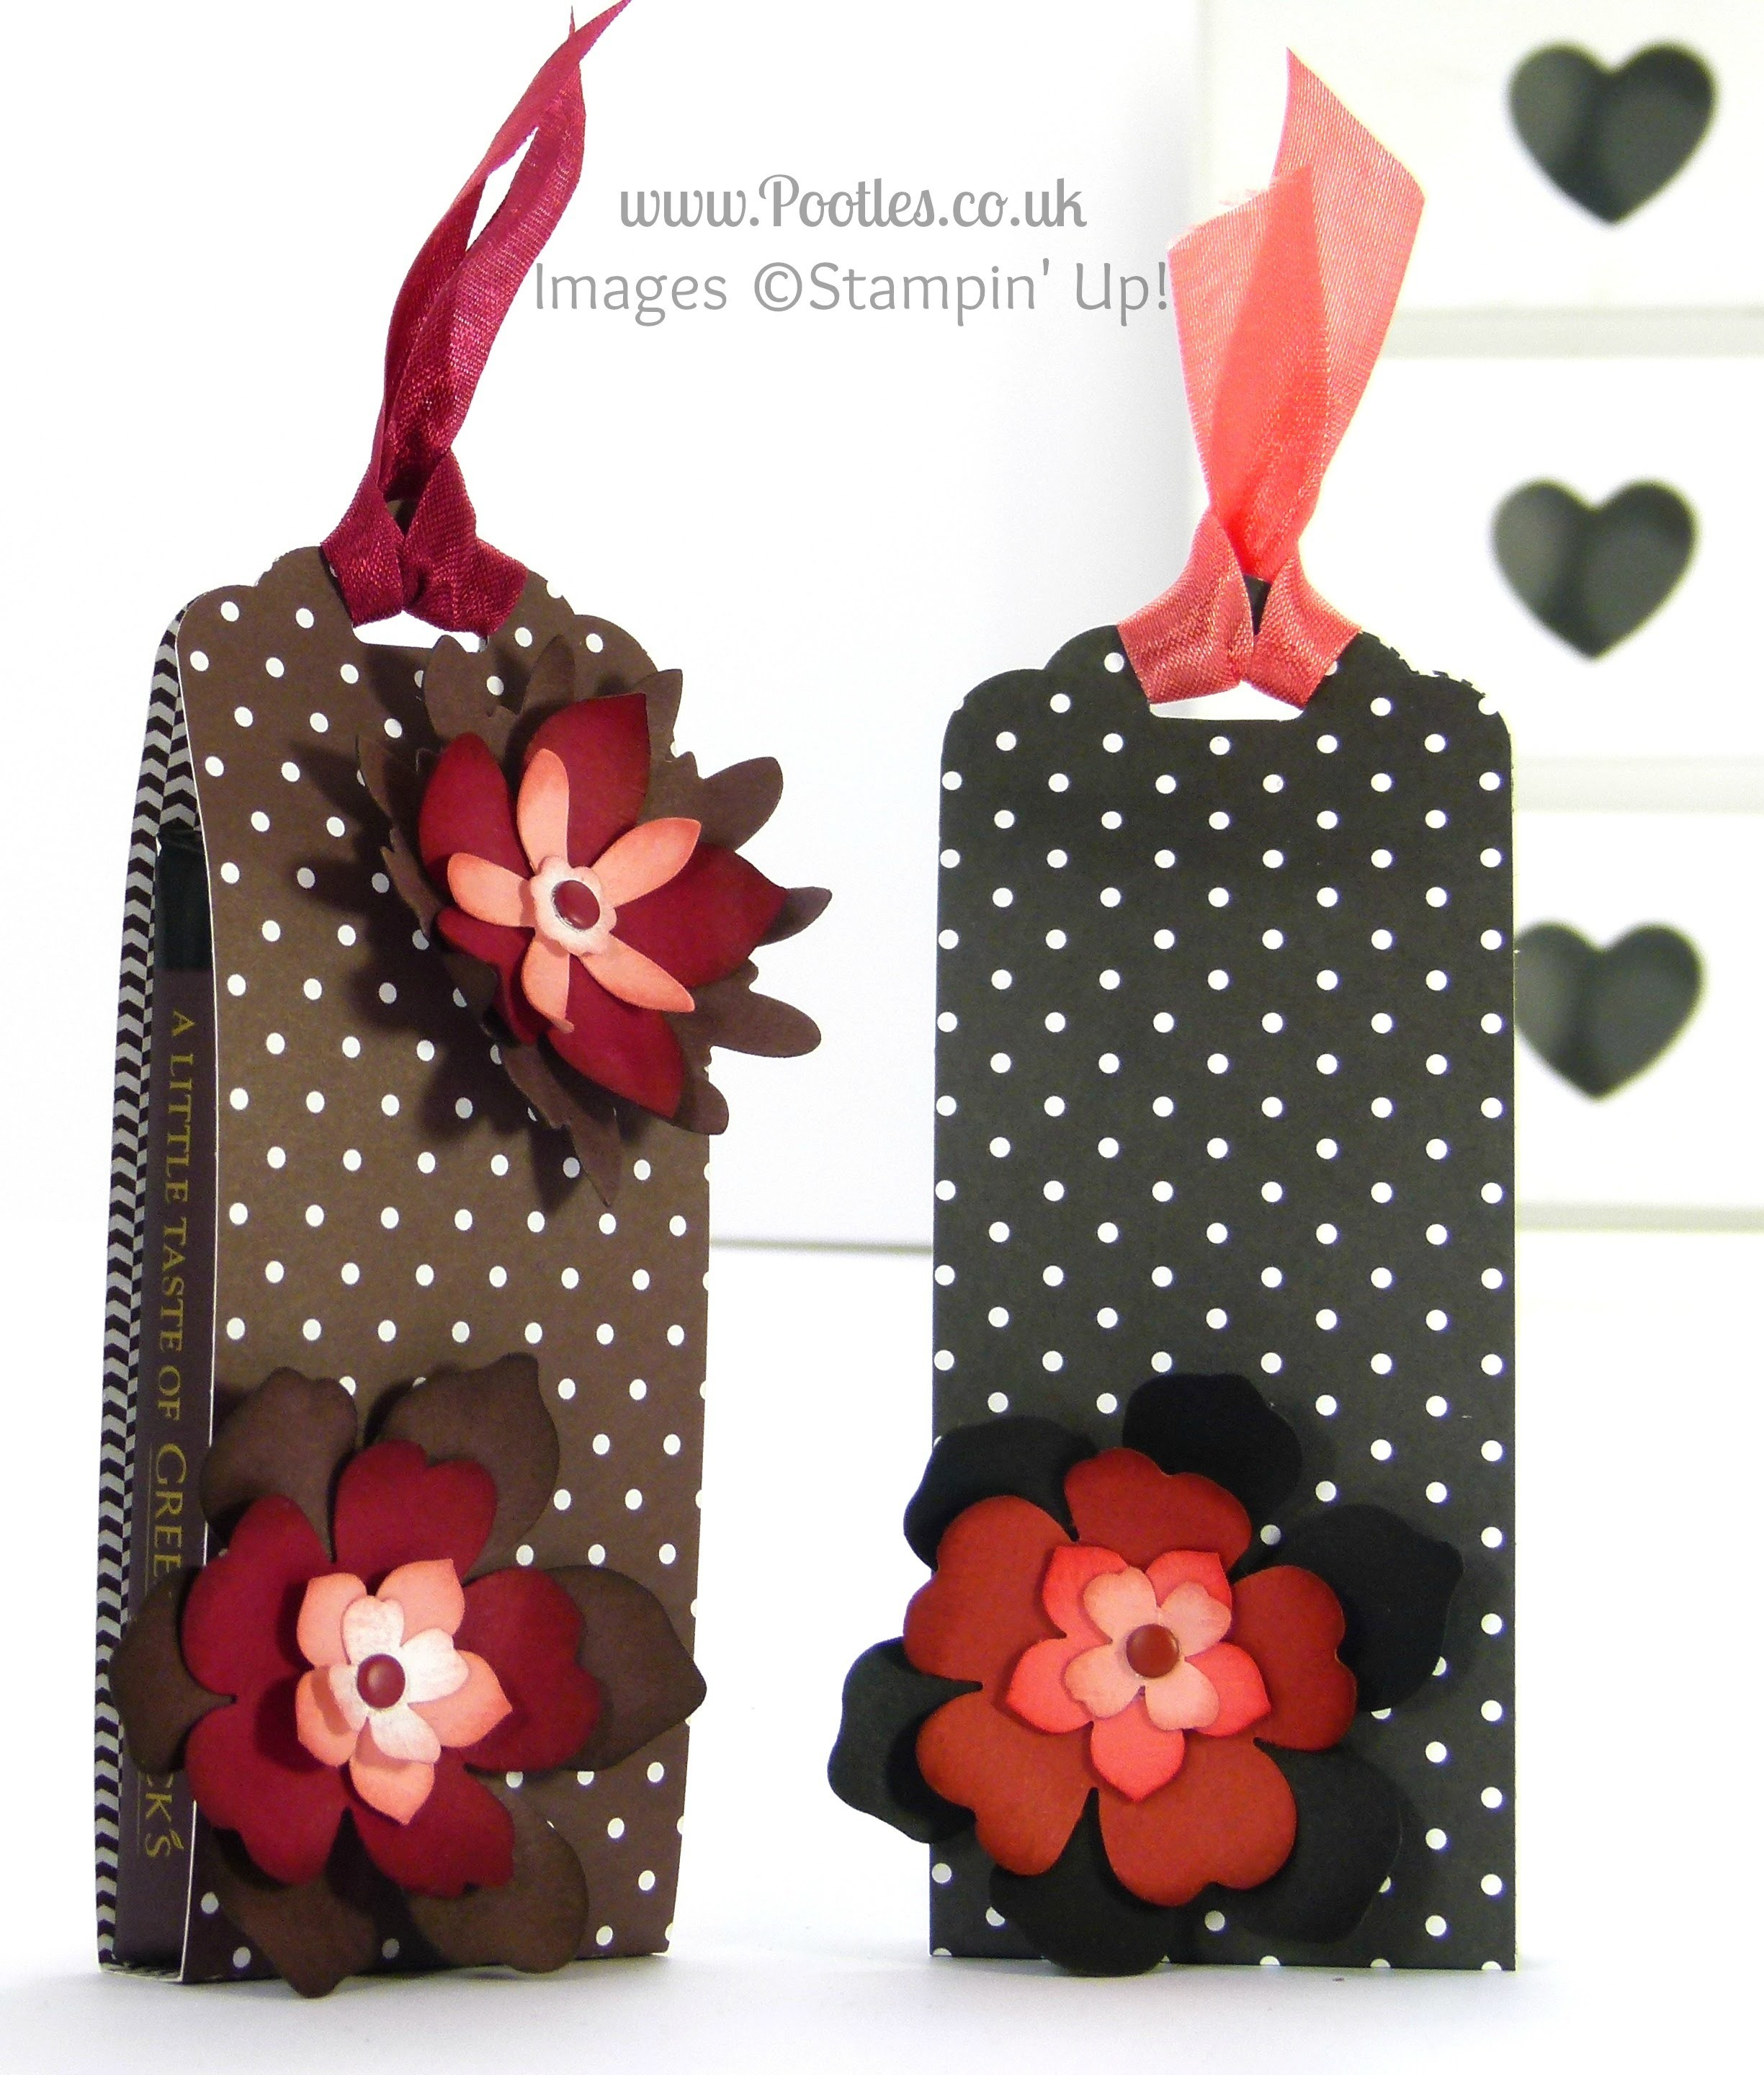 Stampin' Up! UK Green and Blacks Chocolate Pouch Tutorial